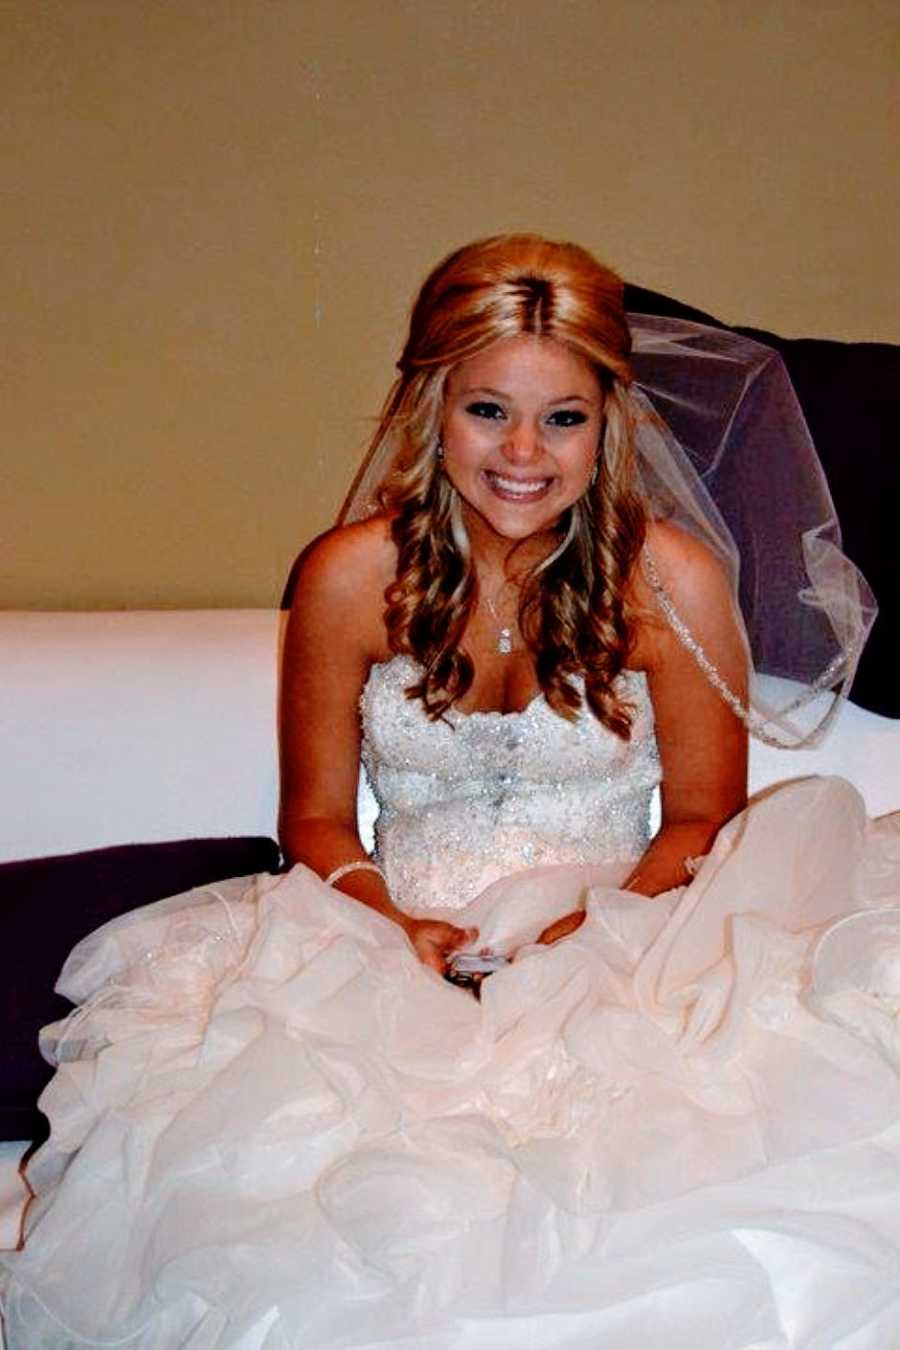 Woman sits on the floor and smiles in her wedding dress